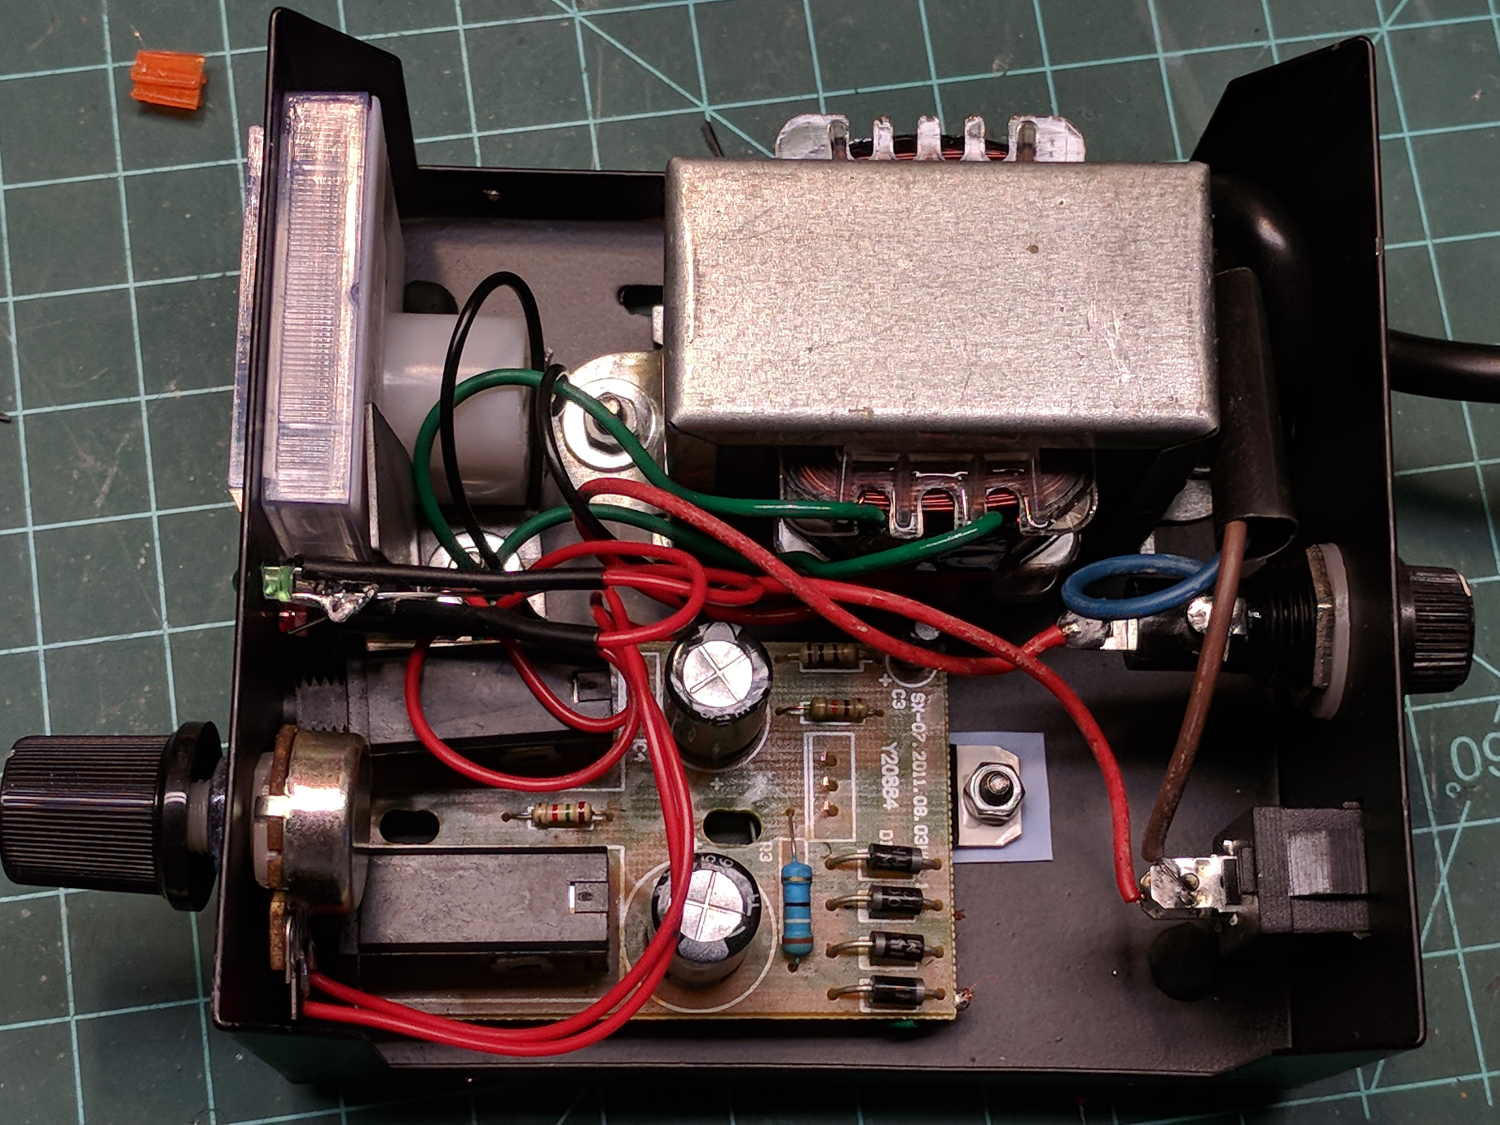 Digital Power Supply Wiring Diagram Governor Online For Compaq Along With Circuit Data Color Code